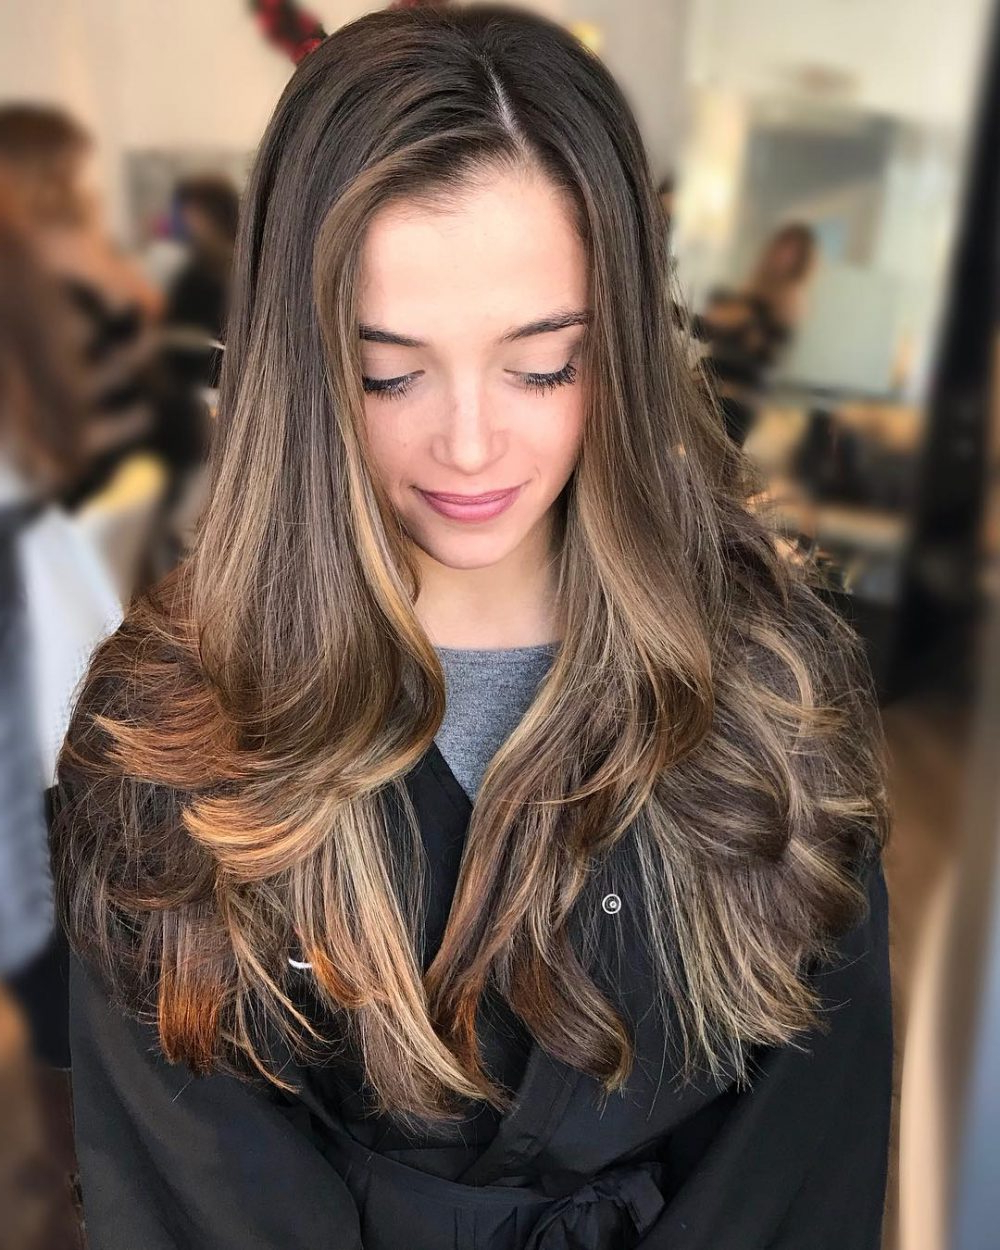 29 Prettiest Hairstyles For Long Straight Hair In 2019 For Well Known Elongated Layered Haircuts For Straight Hair (View 3 of 20)